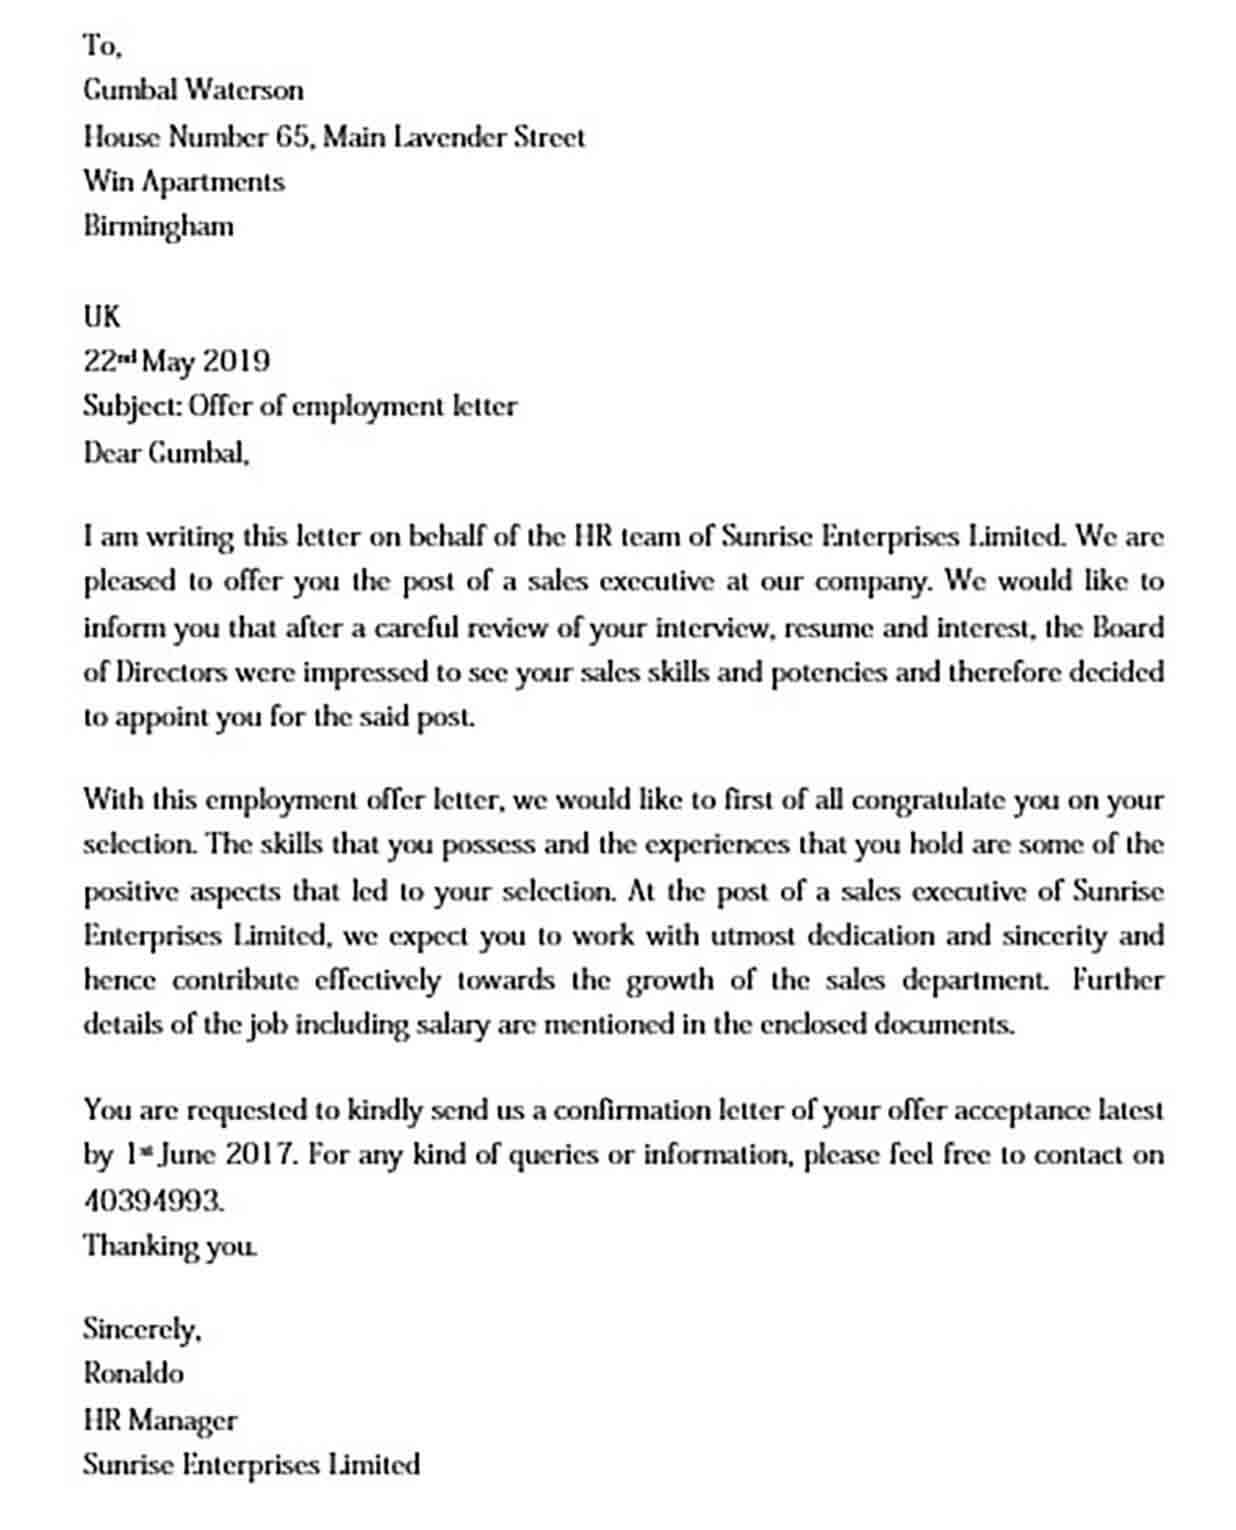 Sample Offer of Employment Letter